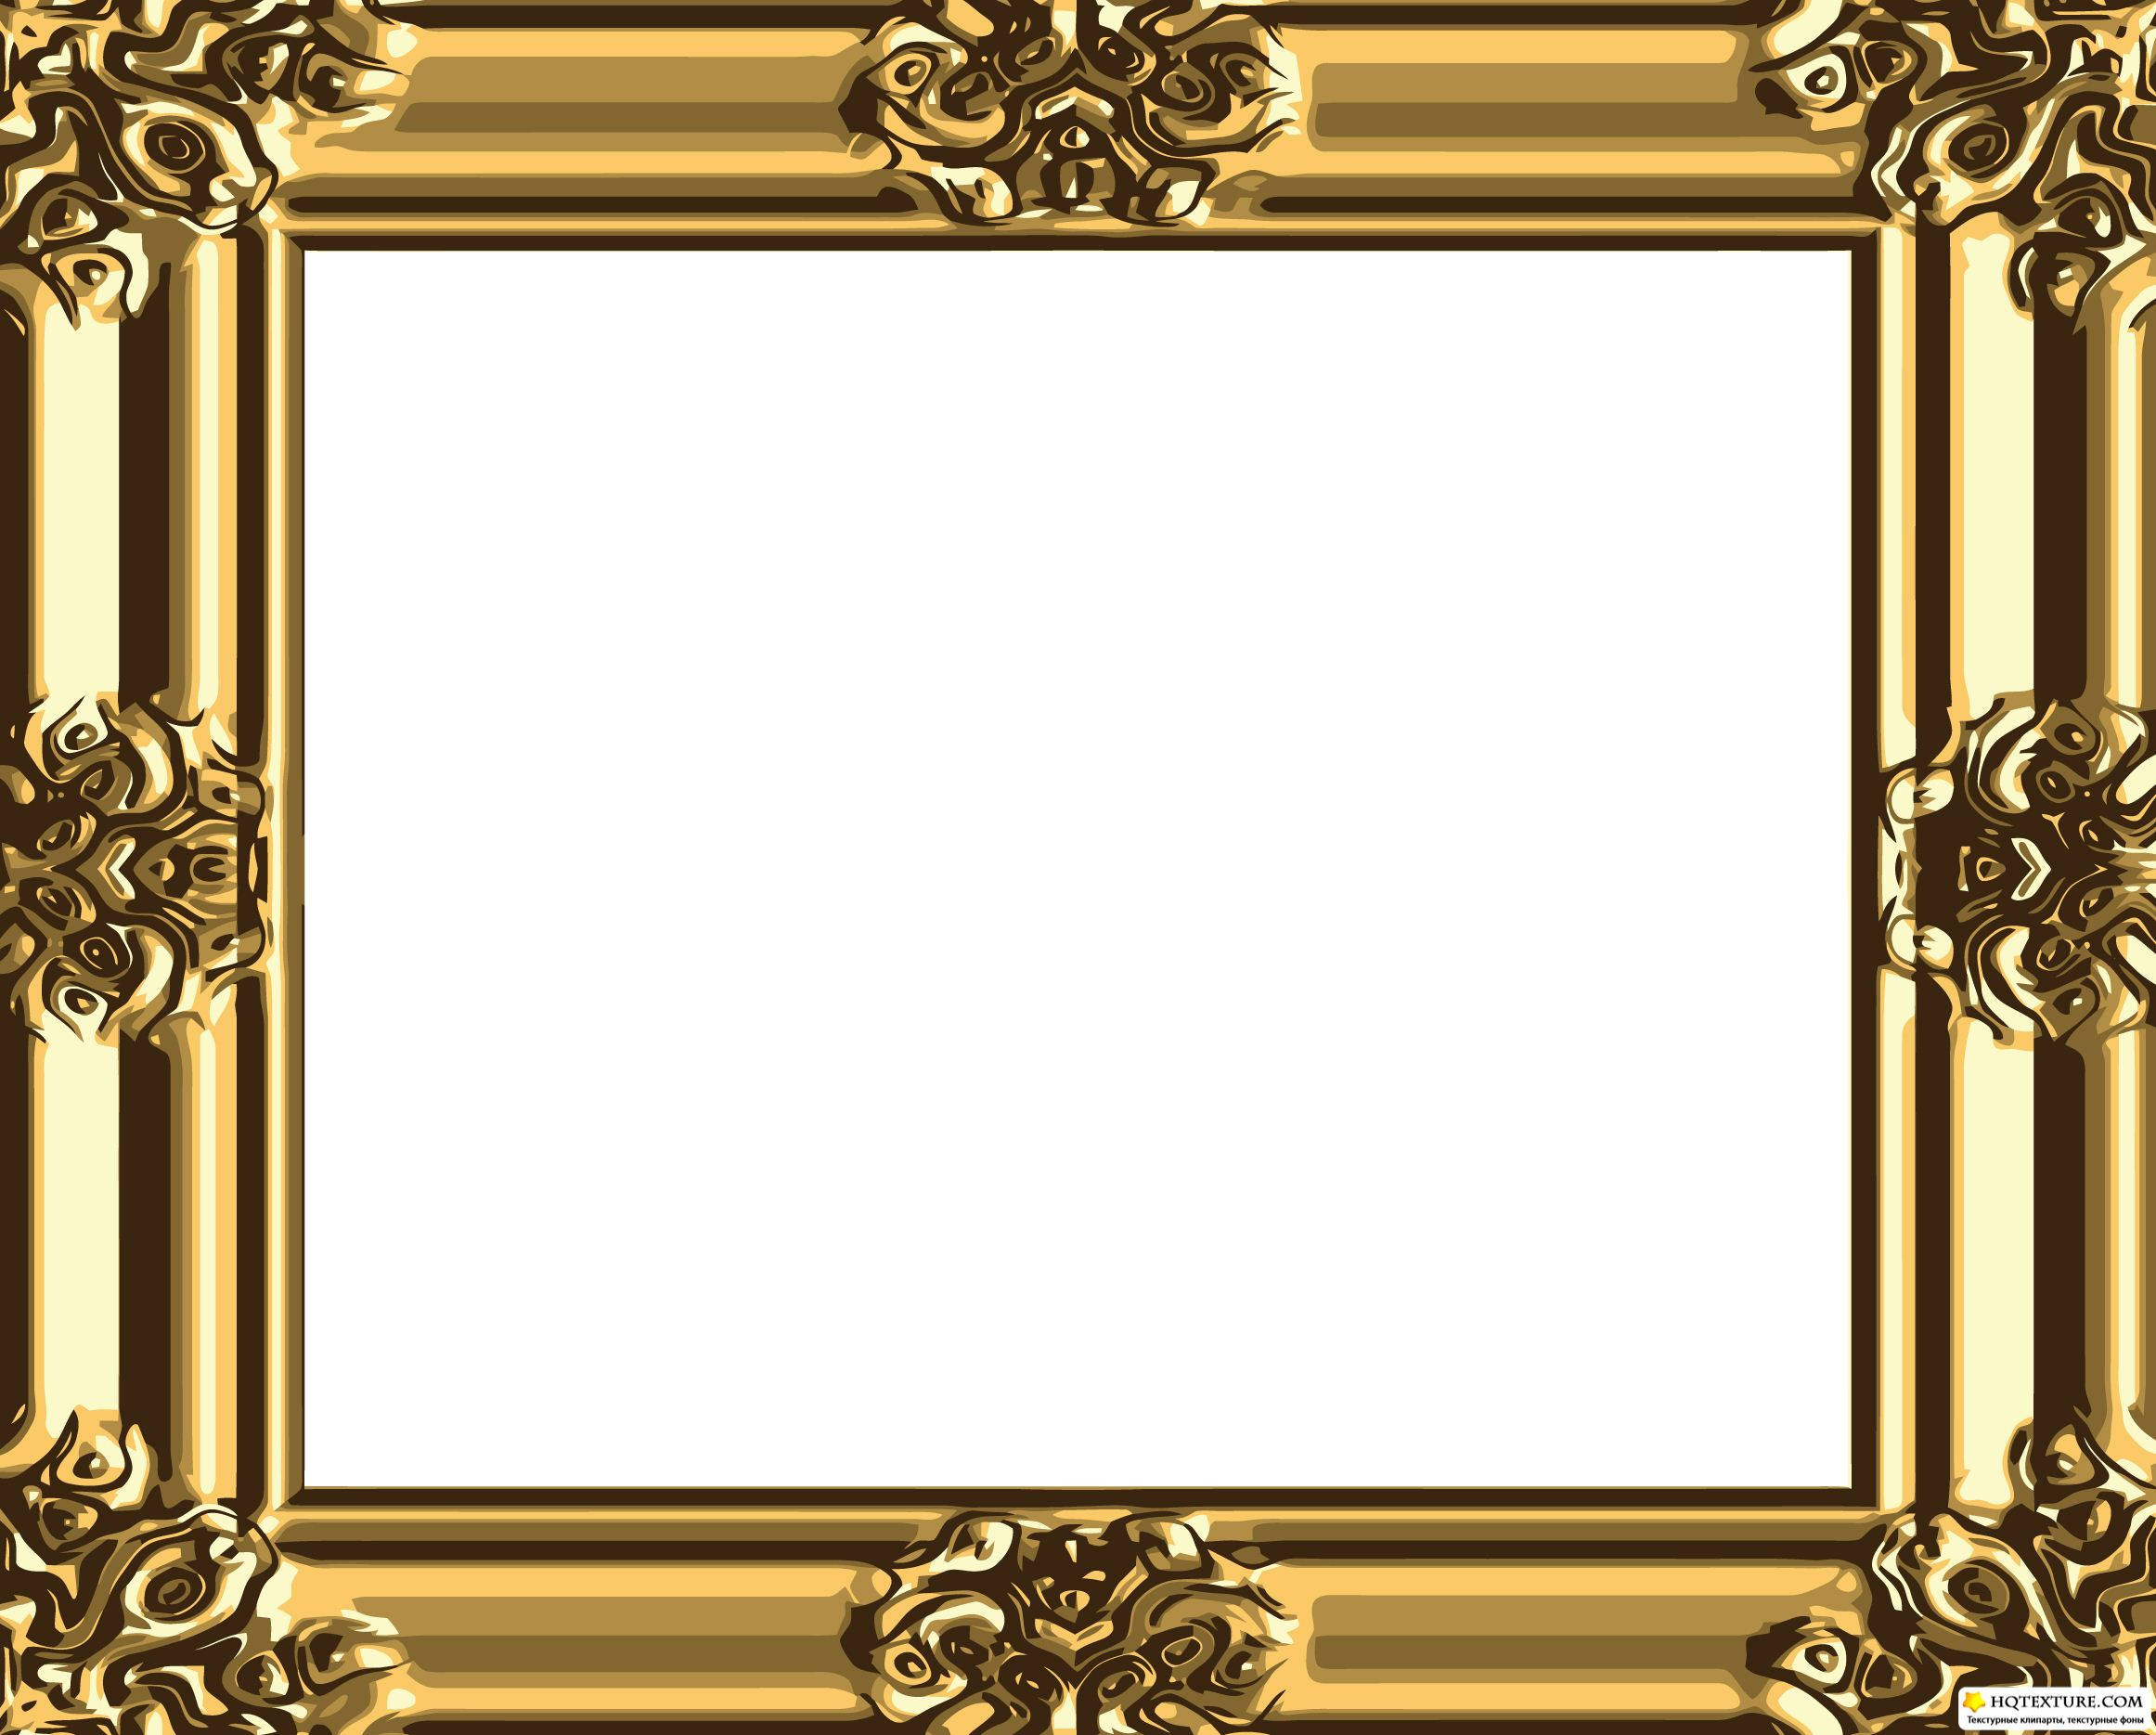 5 Gold Vintage Frame Vector Images